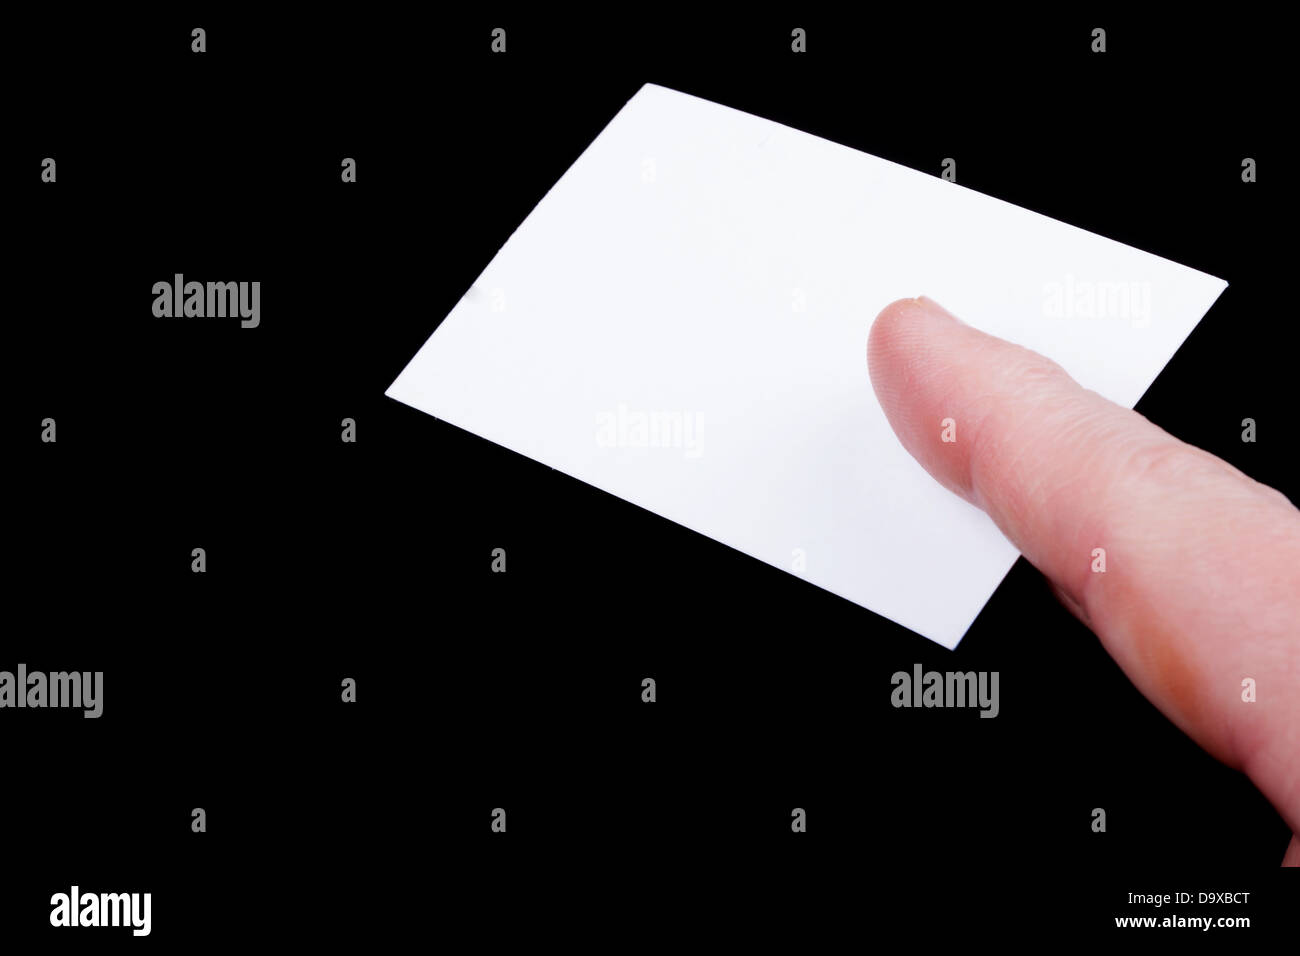 Man hand holding a blank business card Stock Photo: 57742744 - Alamy